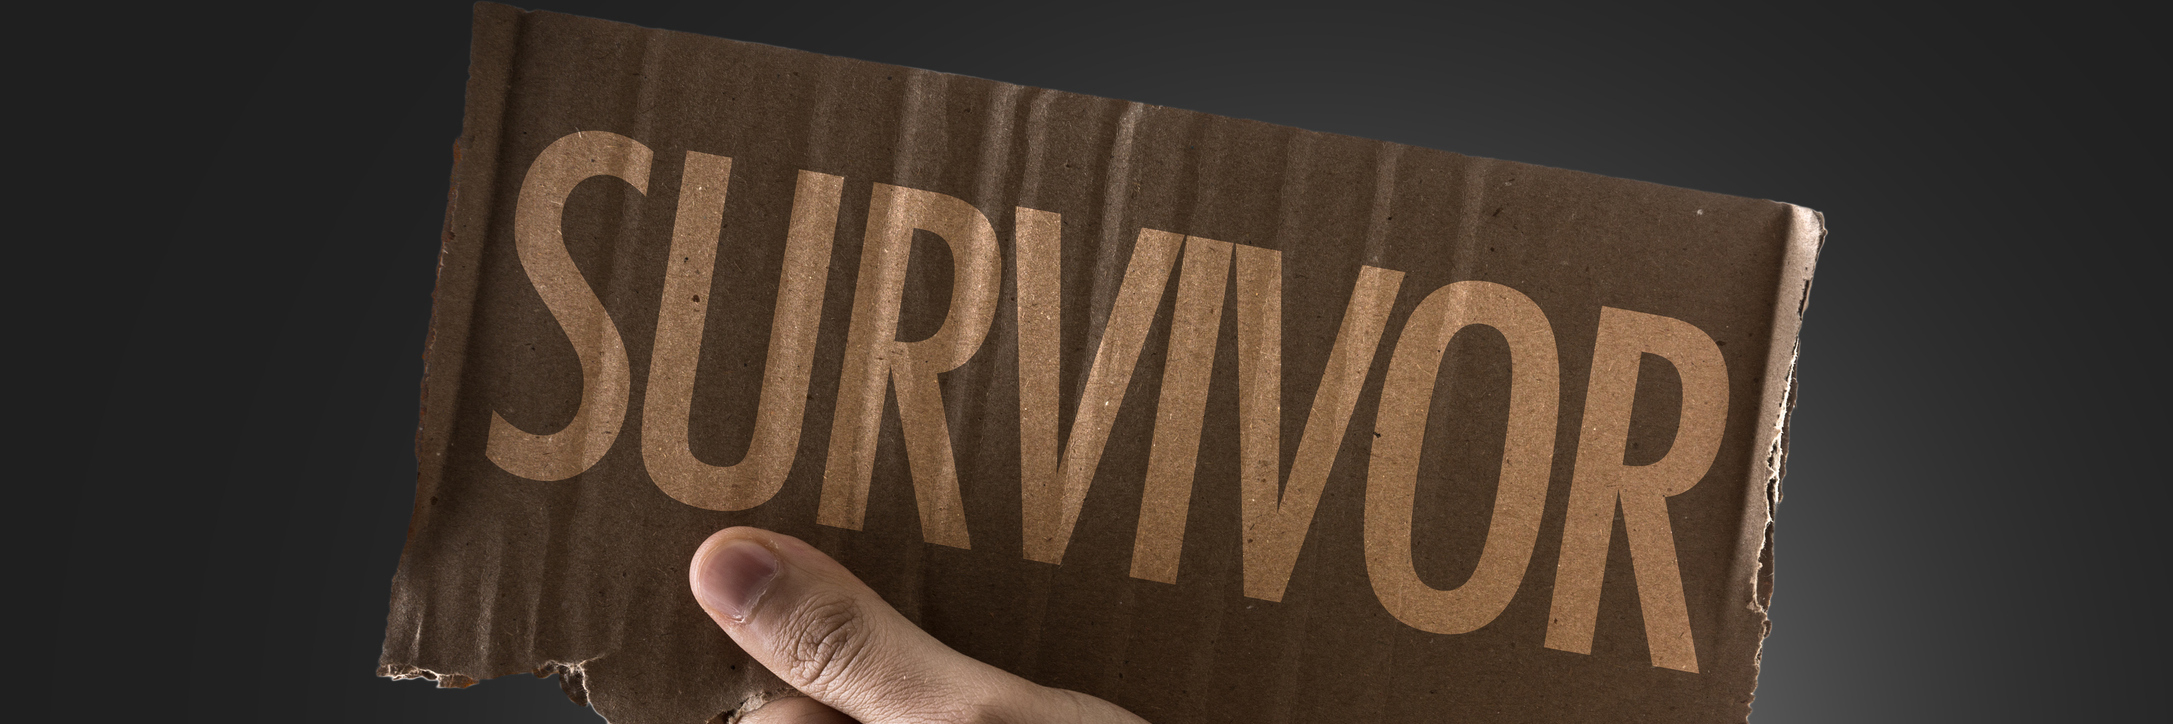 hand holding survivor sign